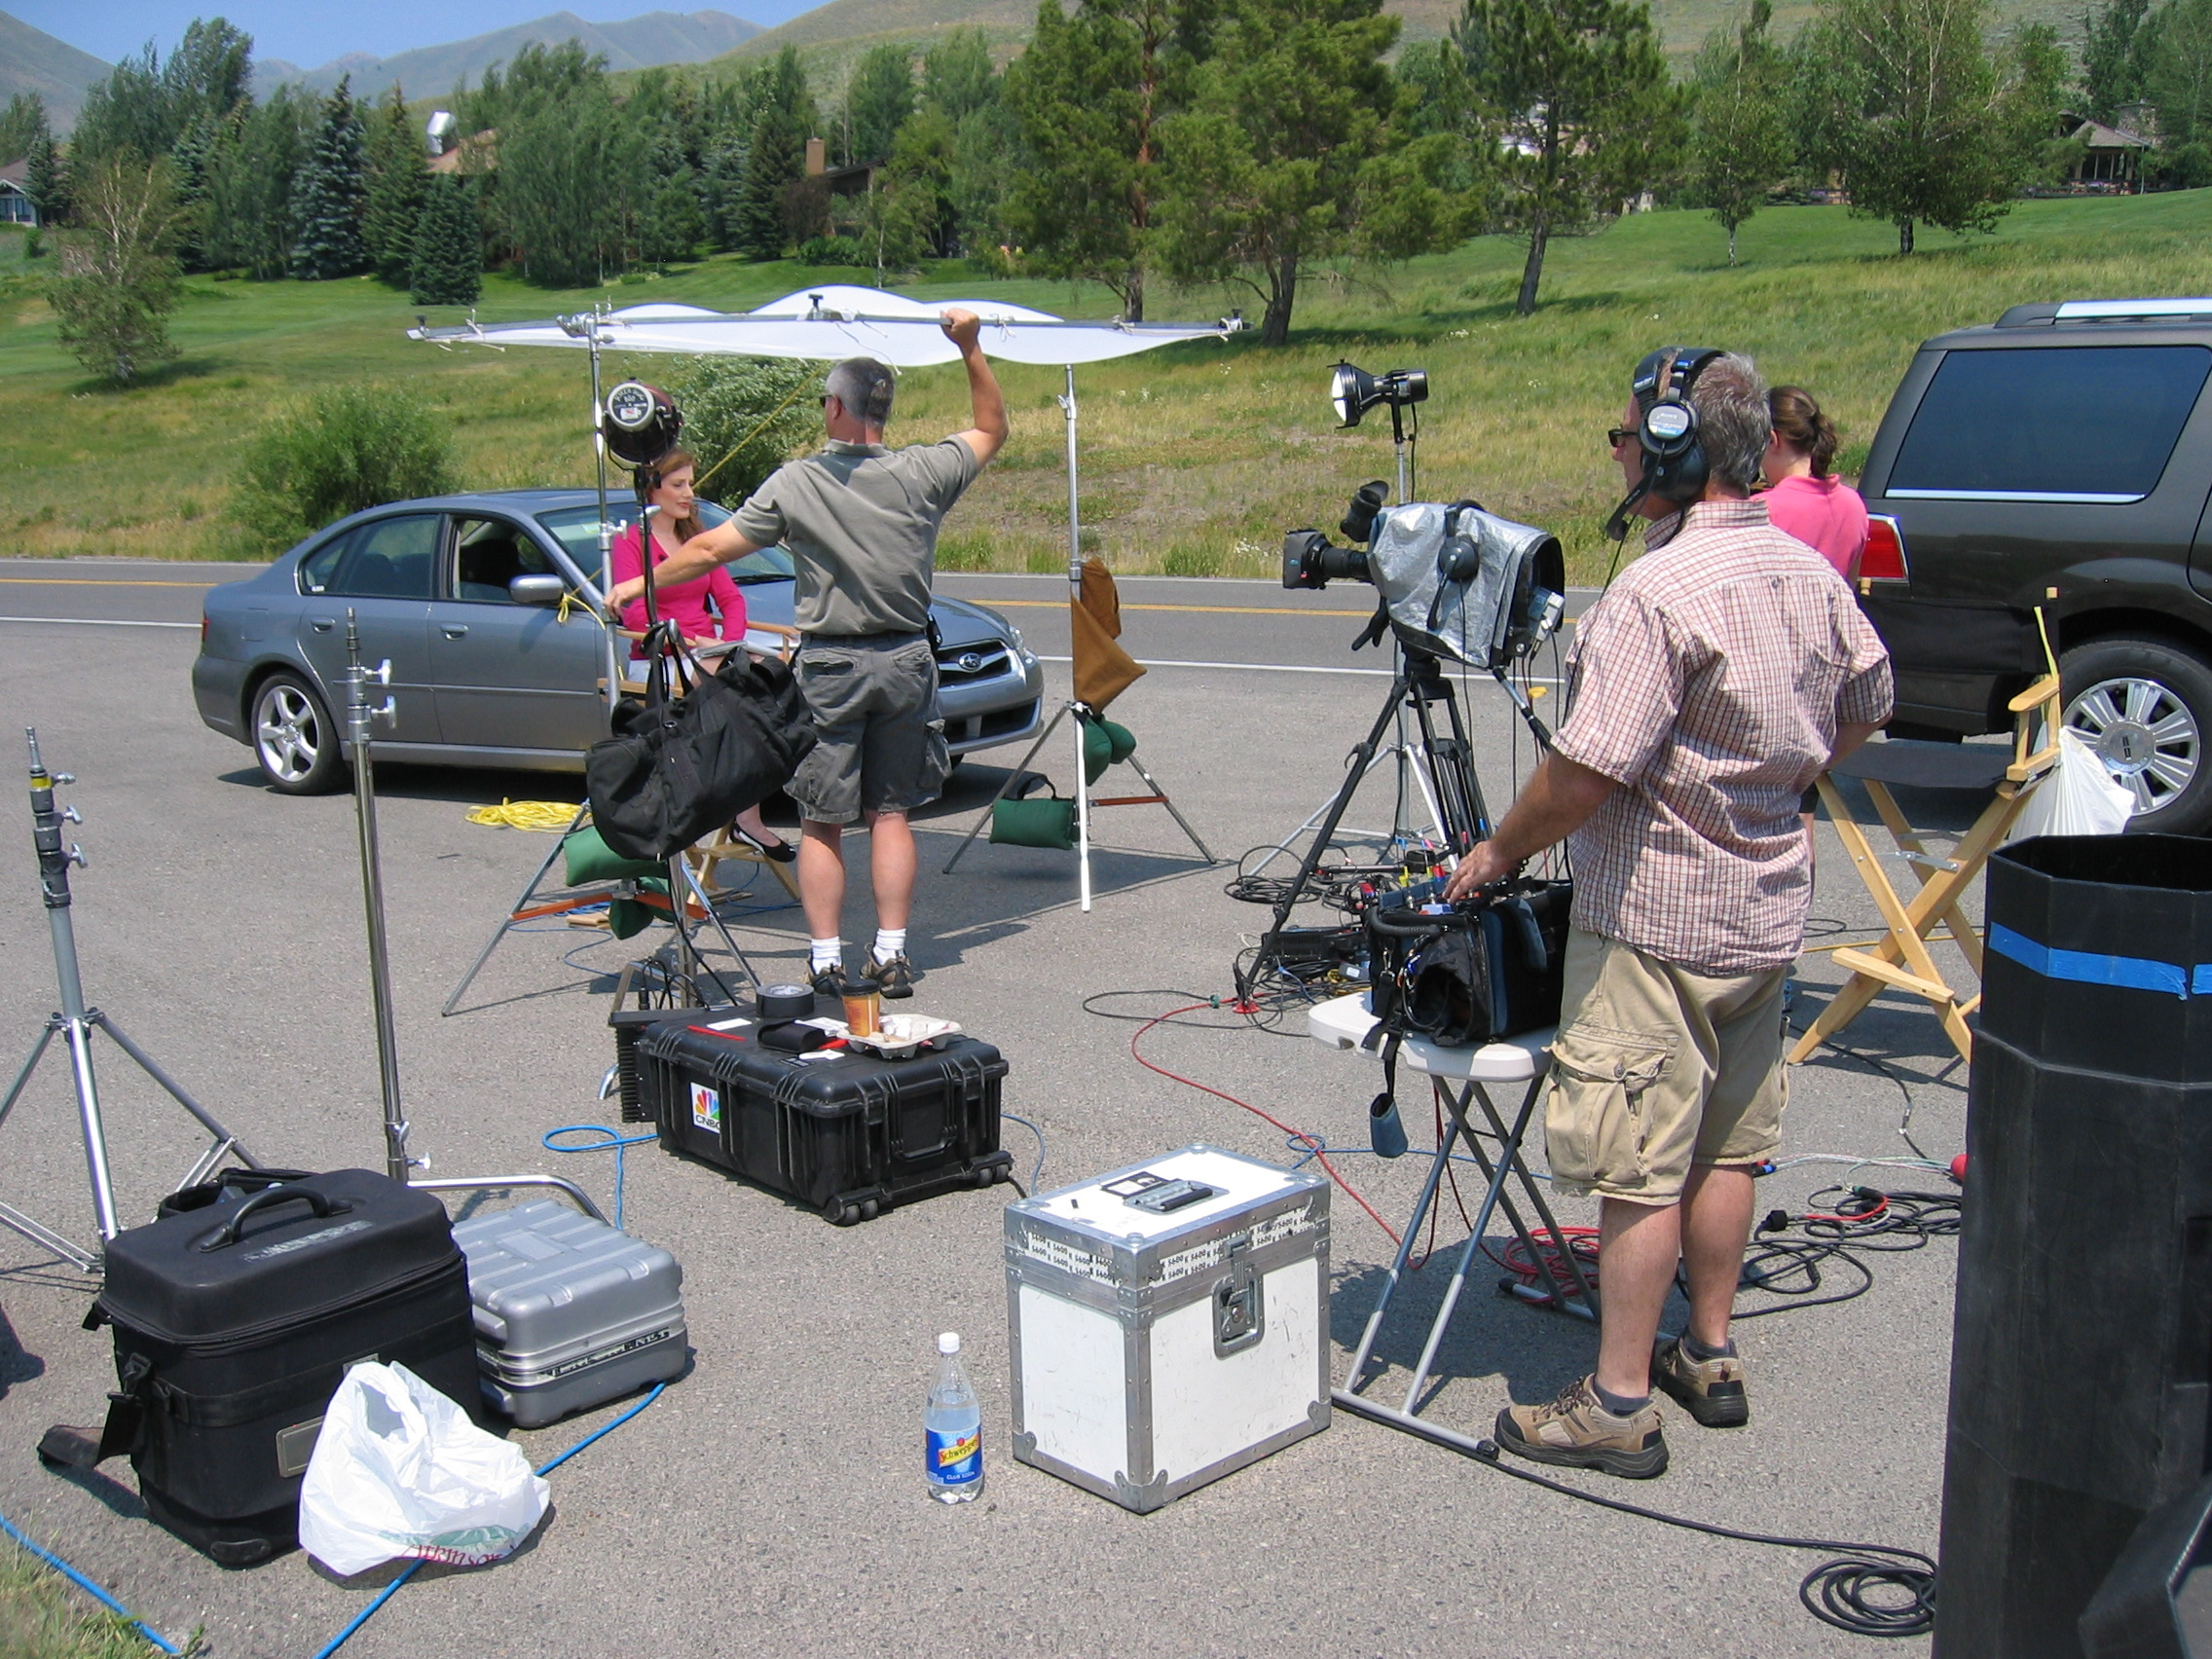 CNBC Live Shot at Sun Valley for the Economic Summit.